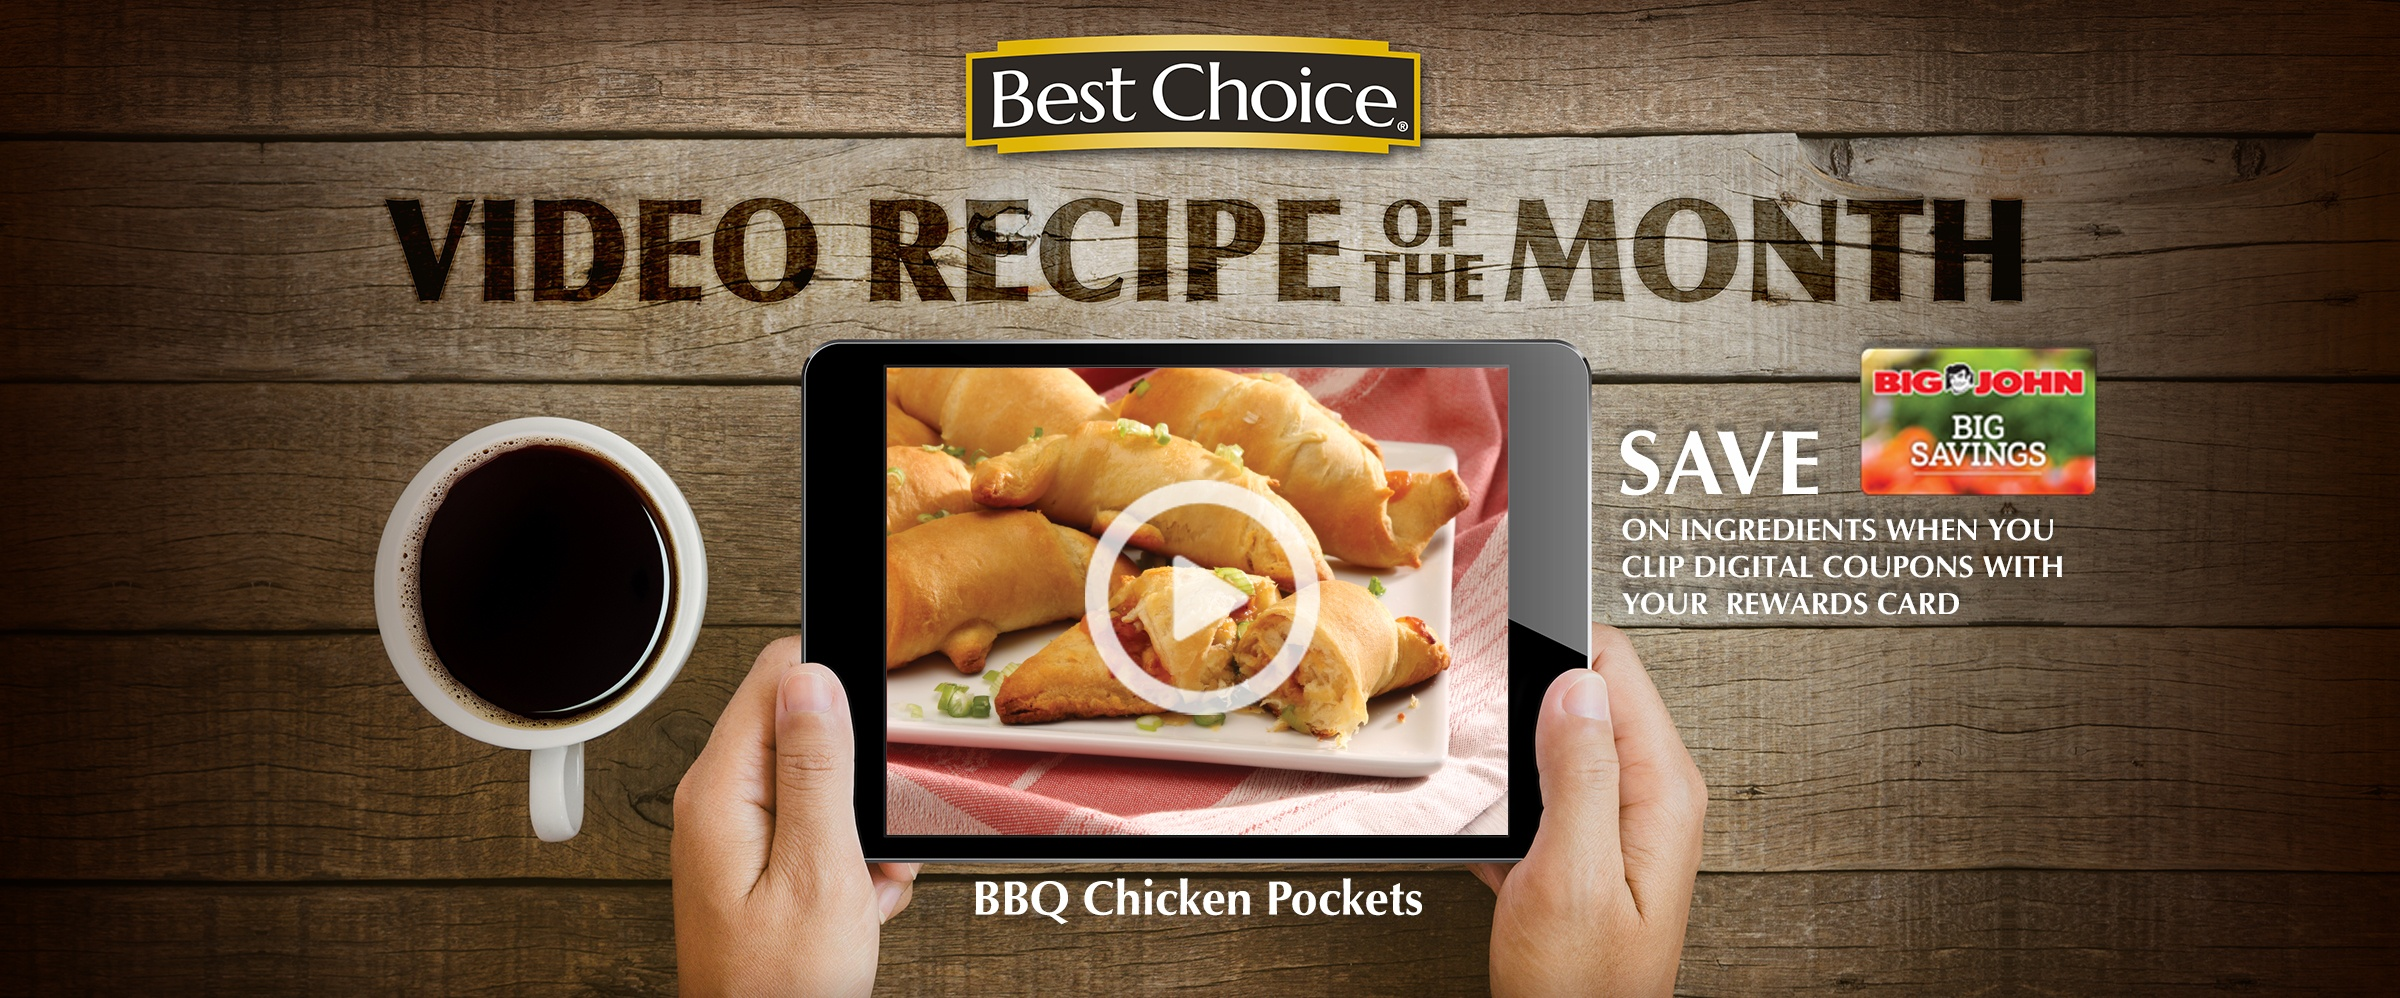 May is National BBQ Month! Celebrate with these tasty BBQ Chicken Pockets. They are super easy to bake up, so you can enjoy delicious BBQ any time. Serve as a main dish or appetizer.